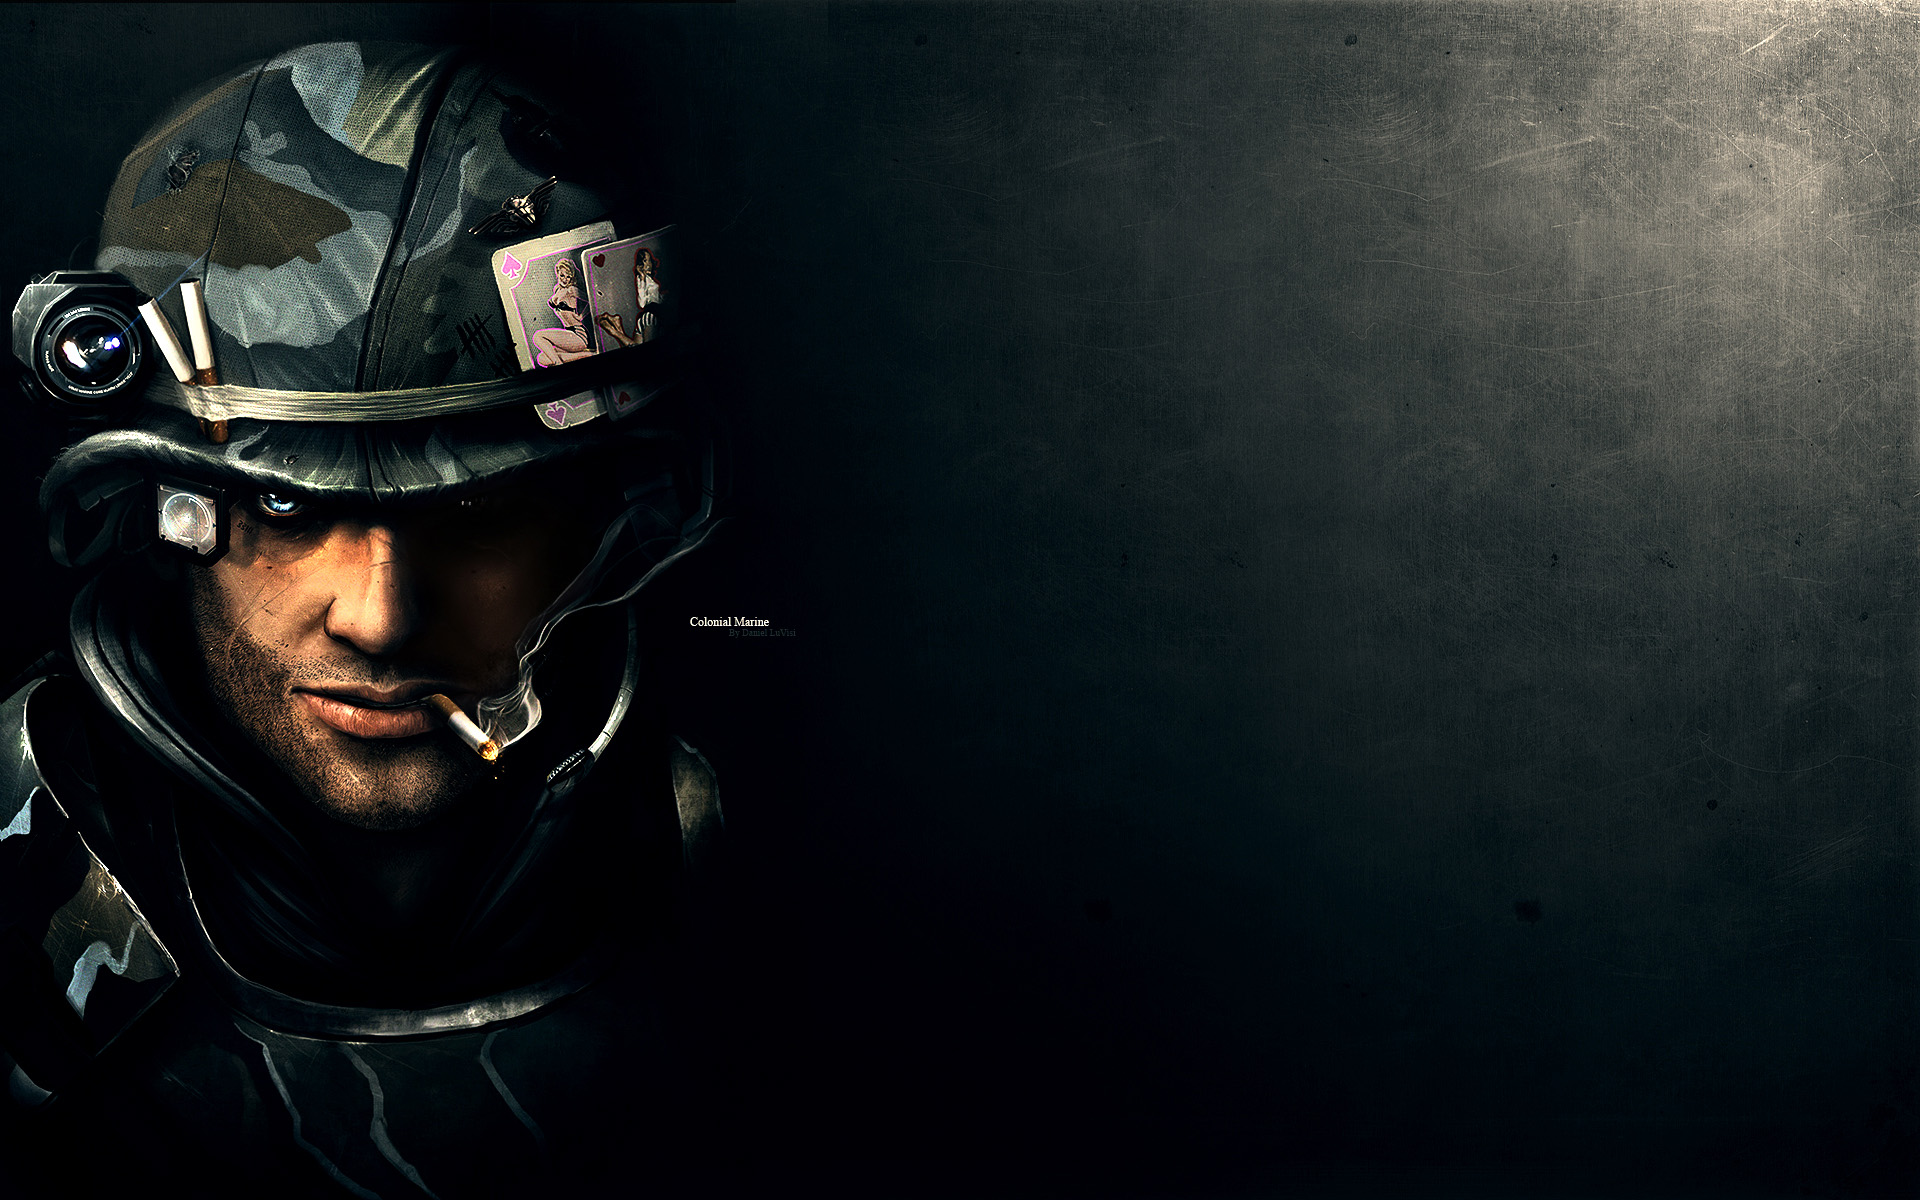 Dark soldier wallpaper | Wallpaper Wide HD